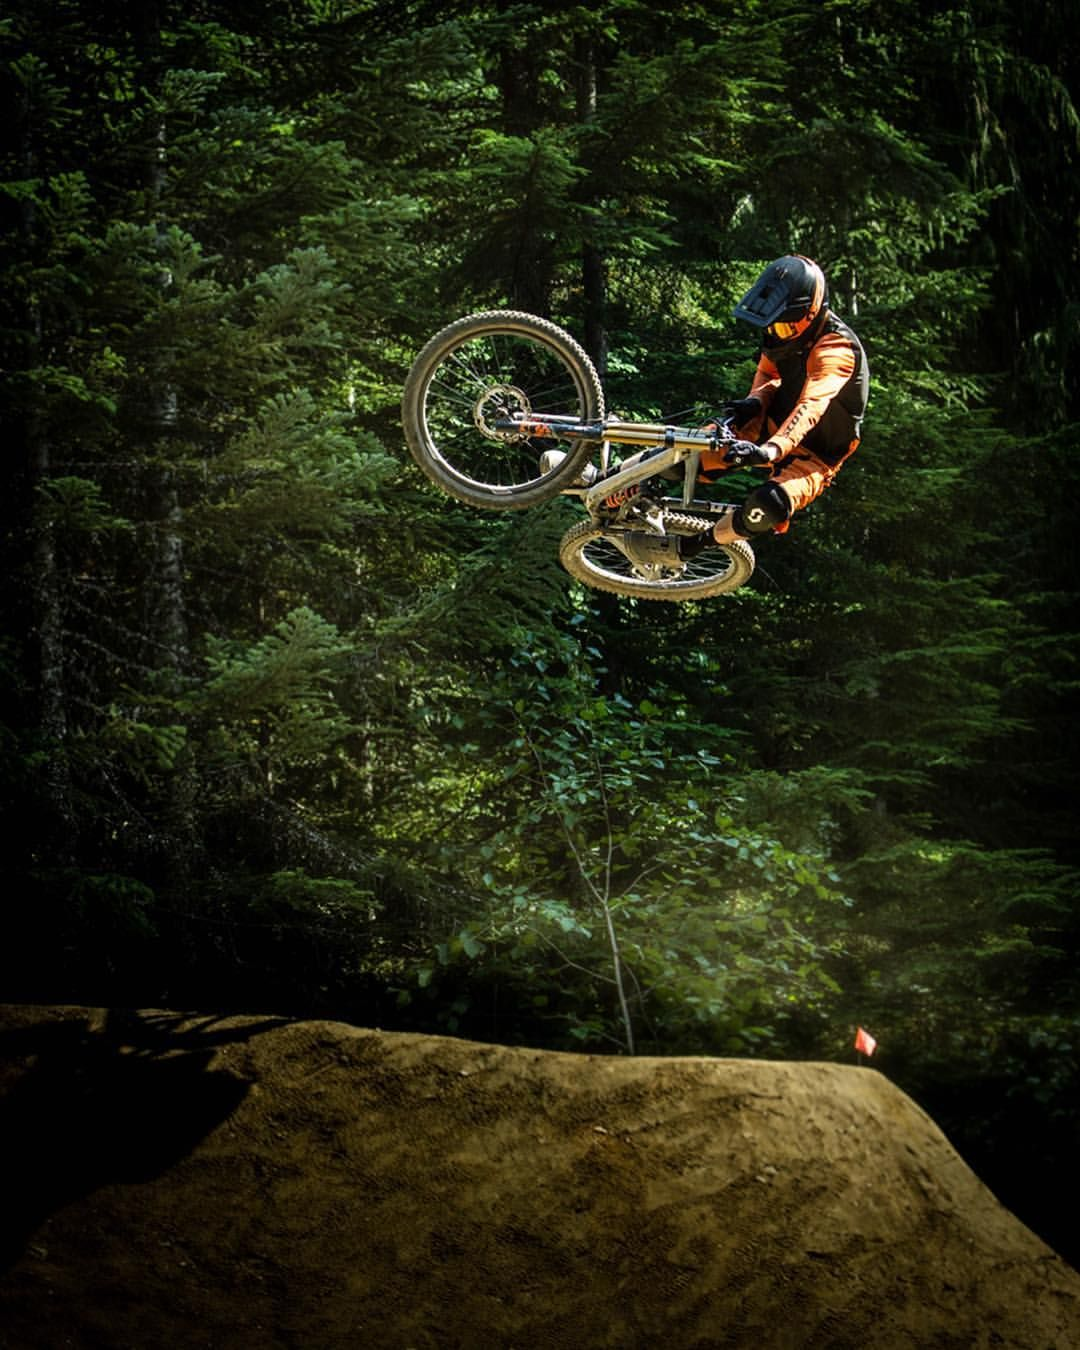 Whistler Jumps The New Hip On Dirt Merchant Is Lappzzz